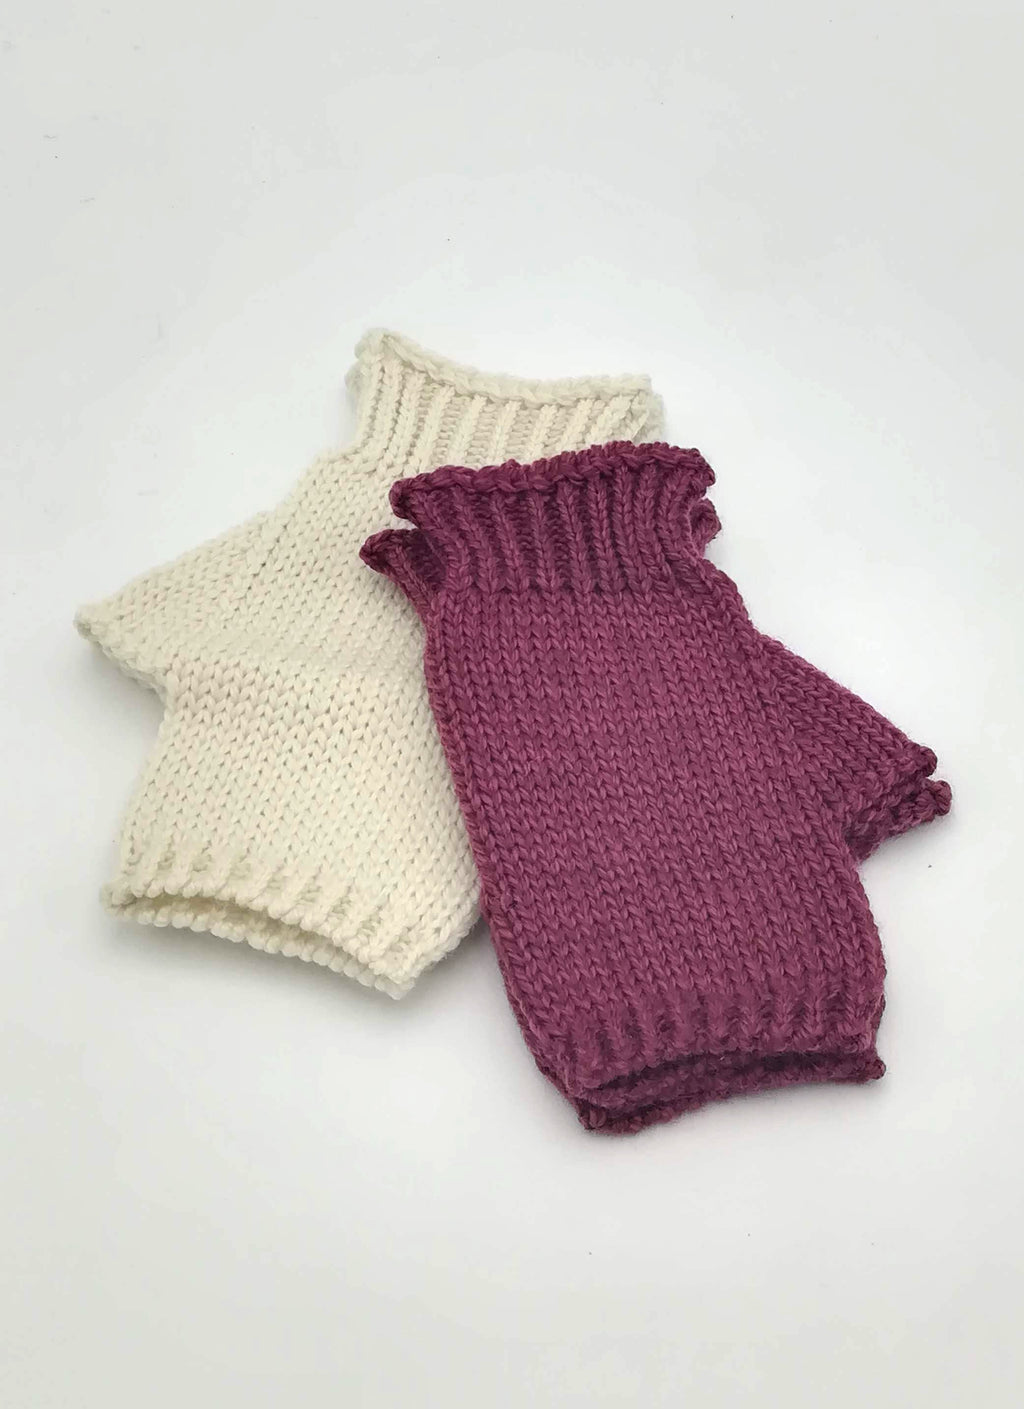 Fingerless mittens.